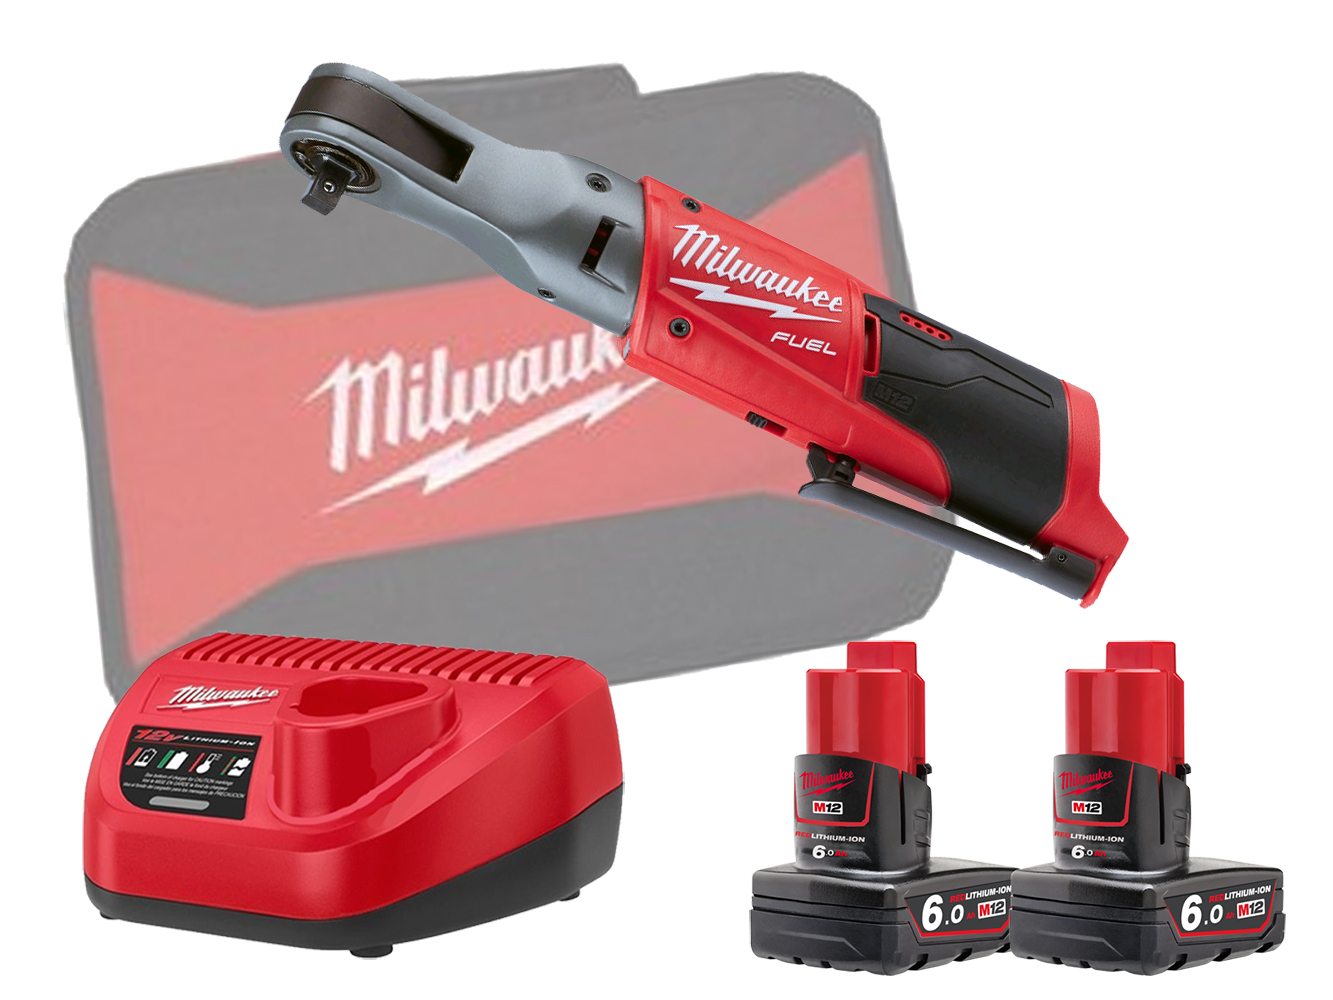 Milwaukee M12FIR38 12V Fuel Brushless 3/8In Impact Ratchet - 6.0Ah Pack